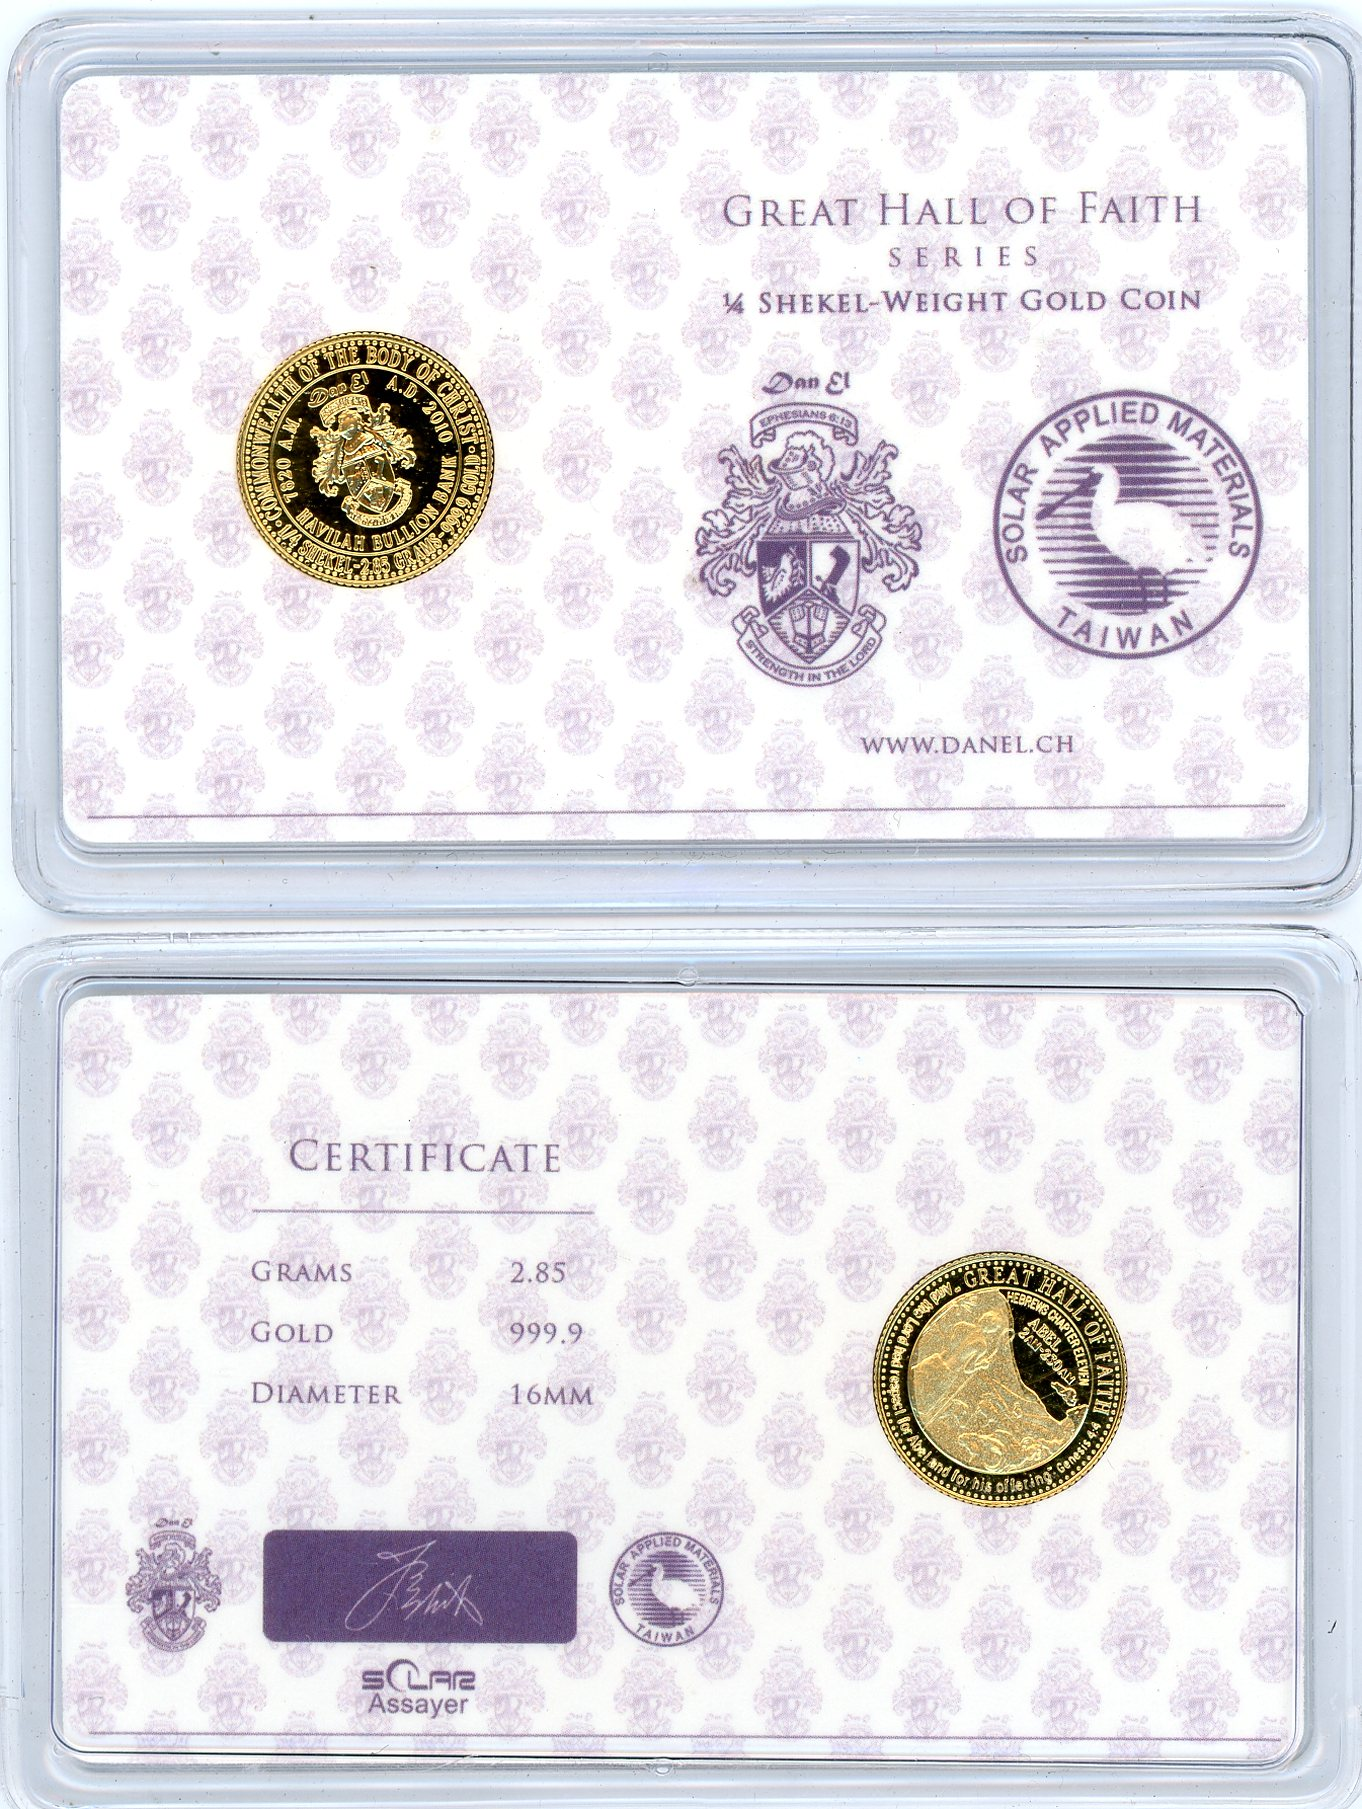 Thumbnail for One Quarter Shekel weight 2.85gm .999 with Certificate